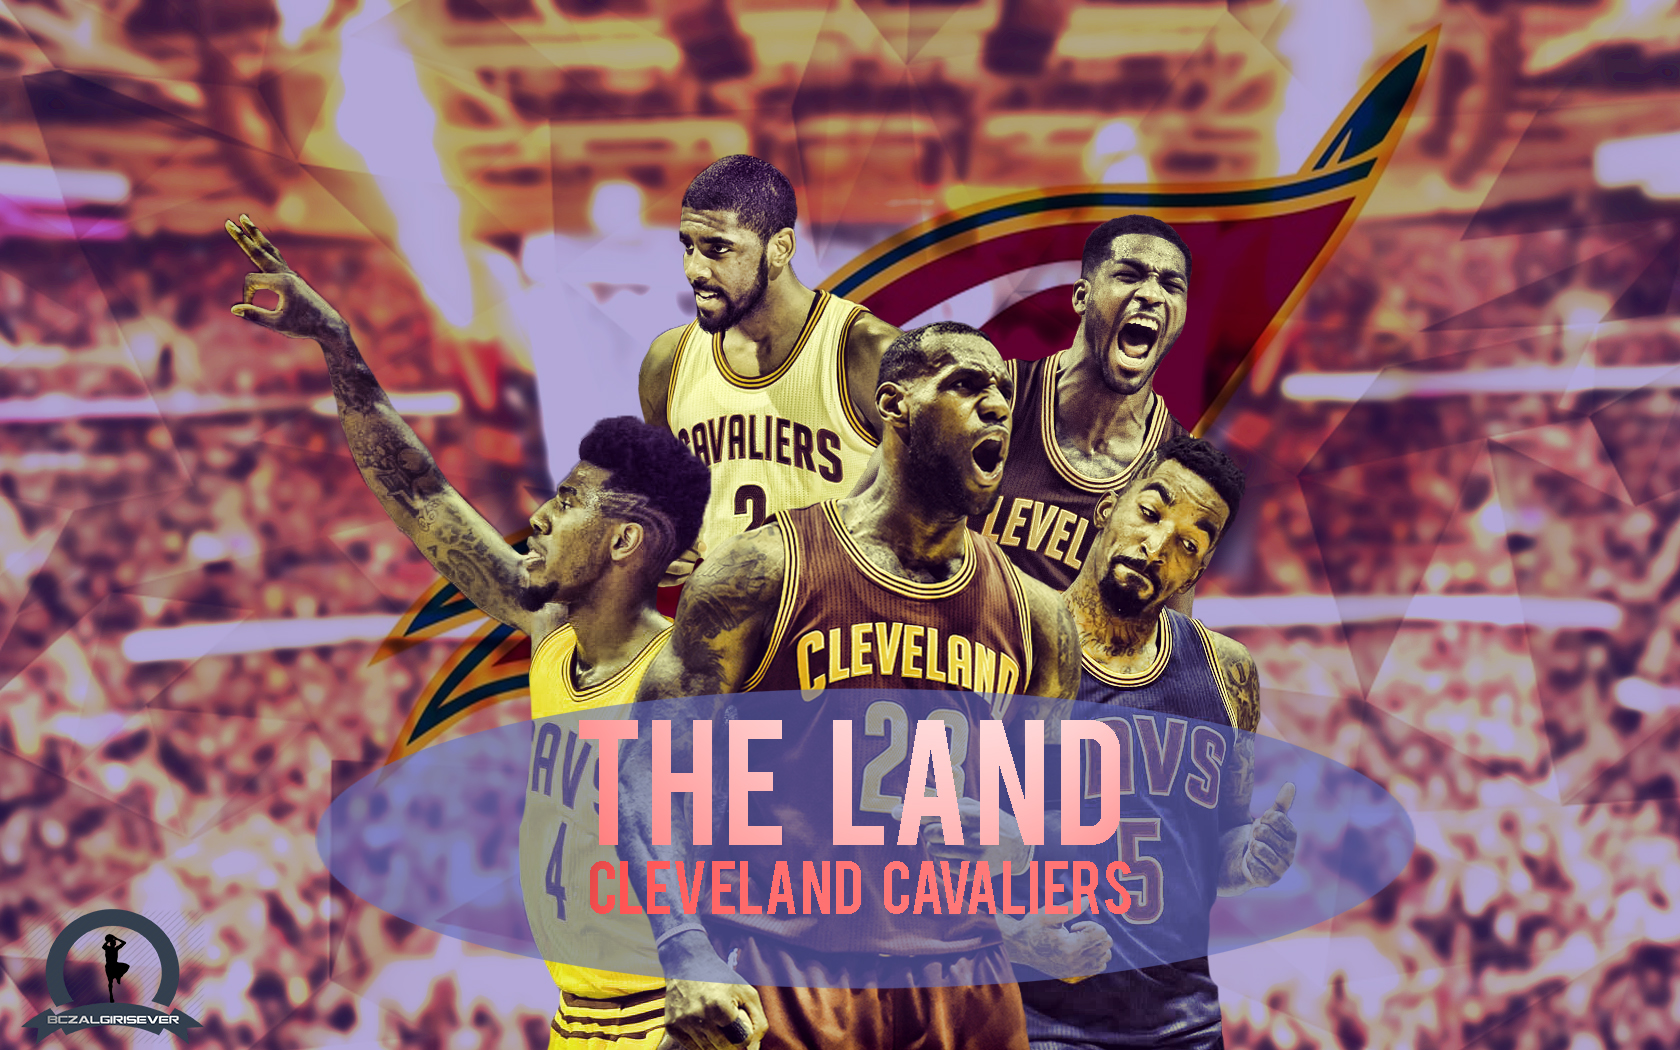 cleveland cavaliers wallpaper 2015 by bczalgirisever on